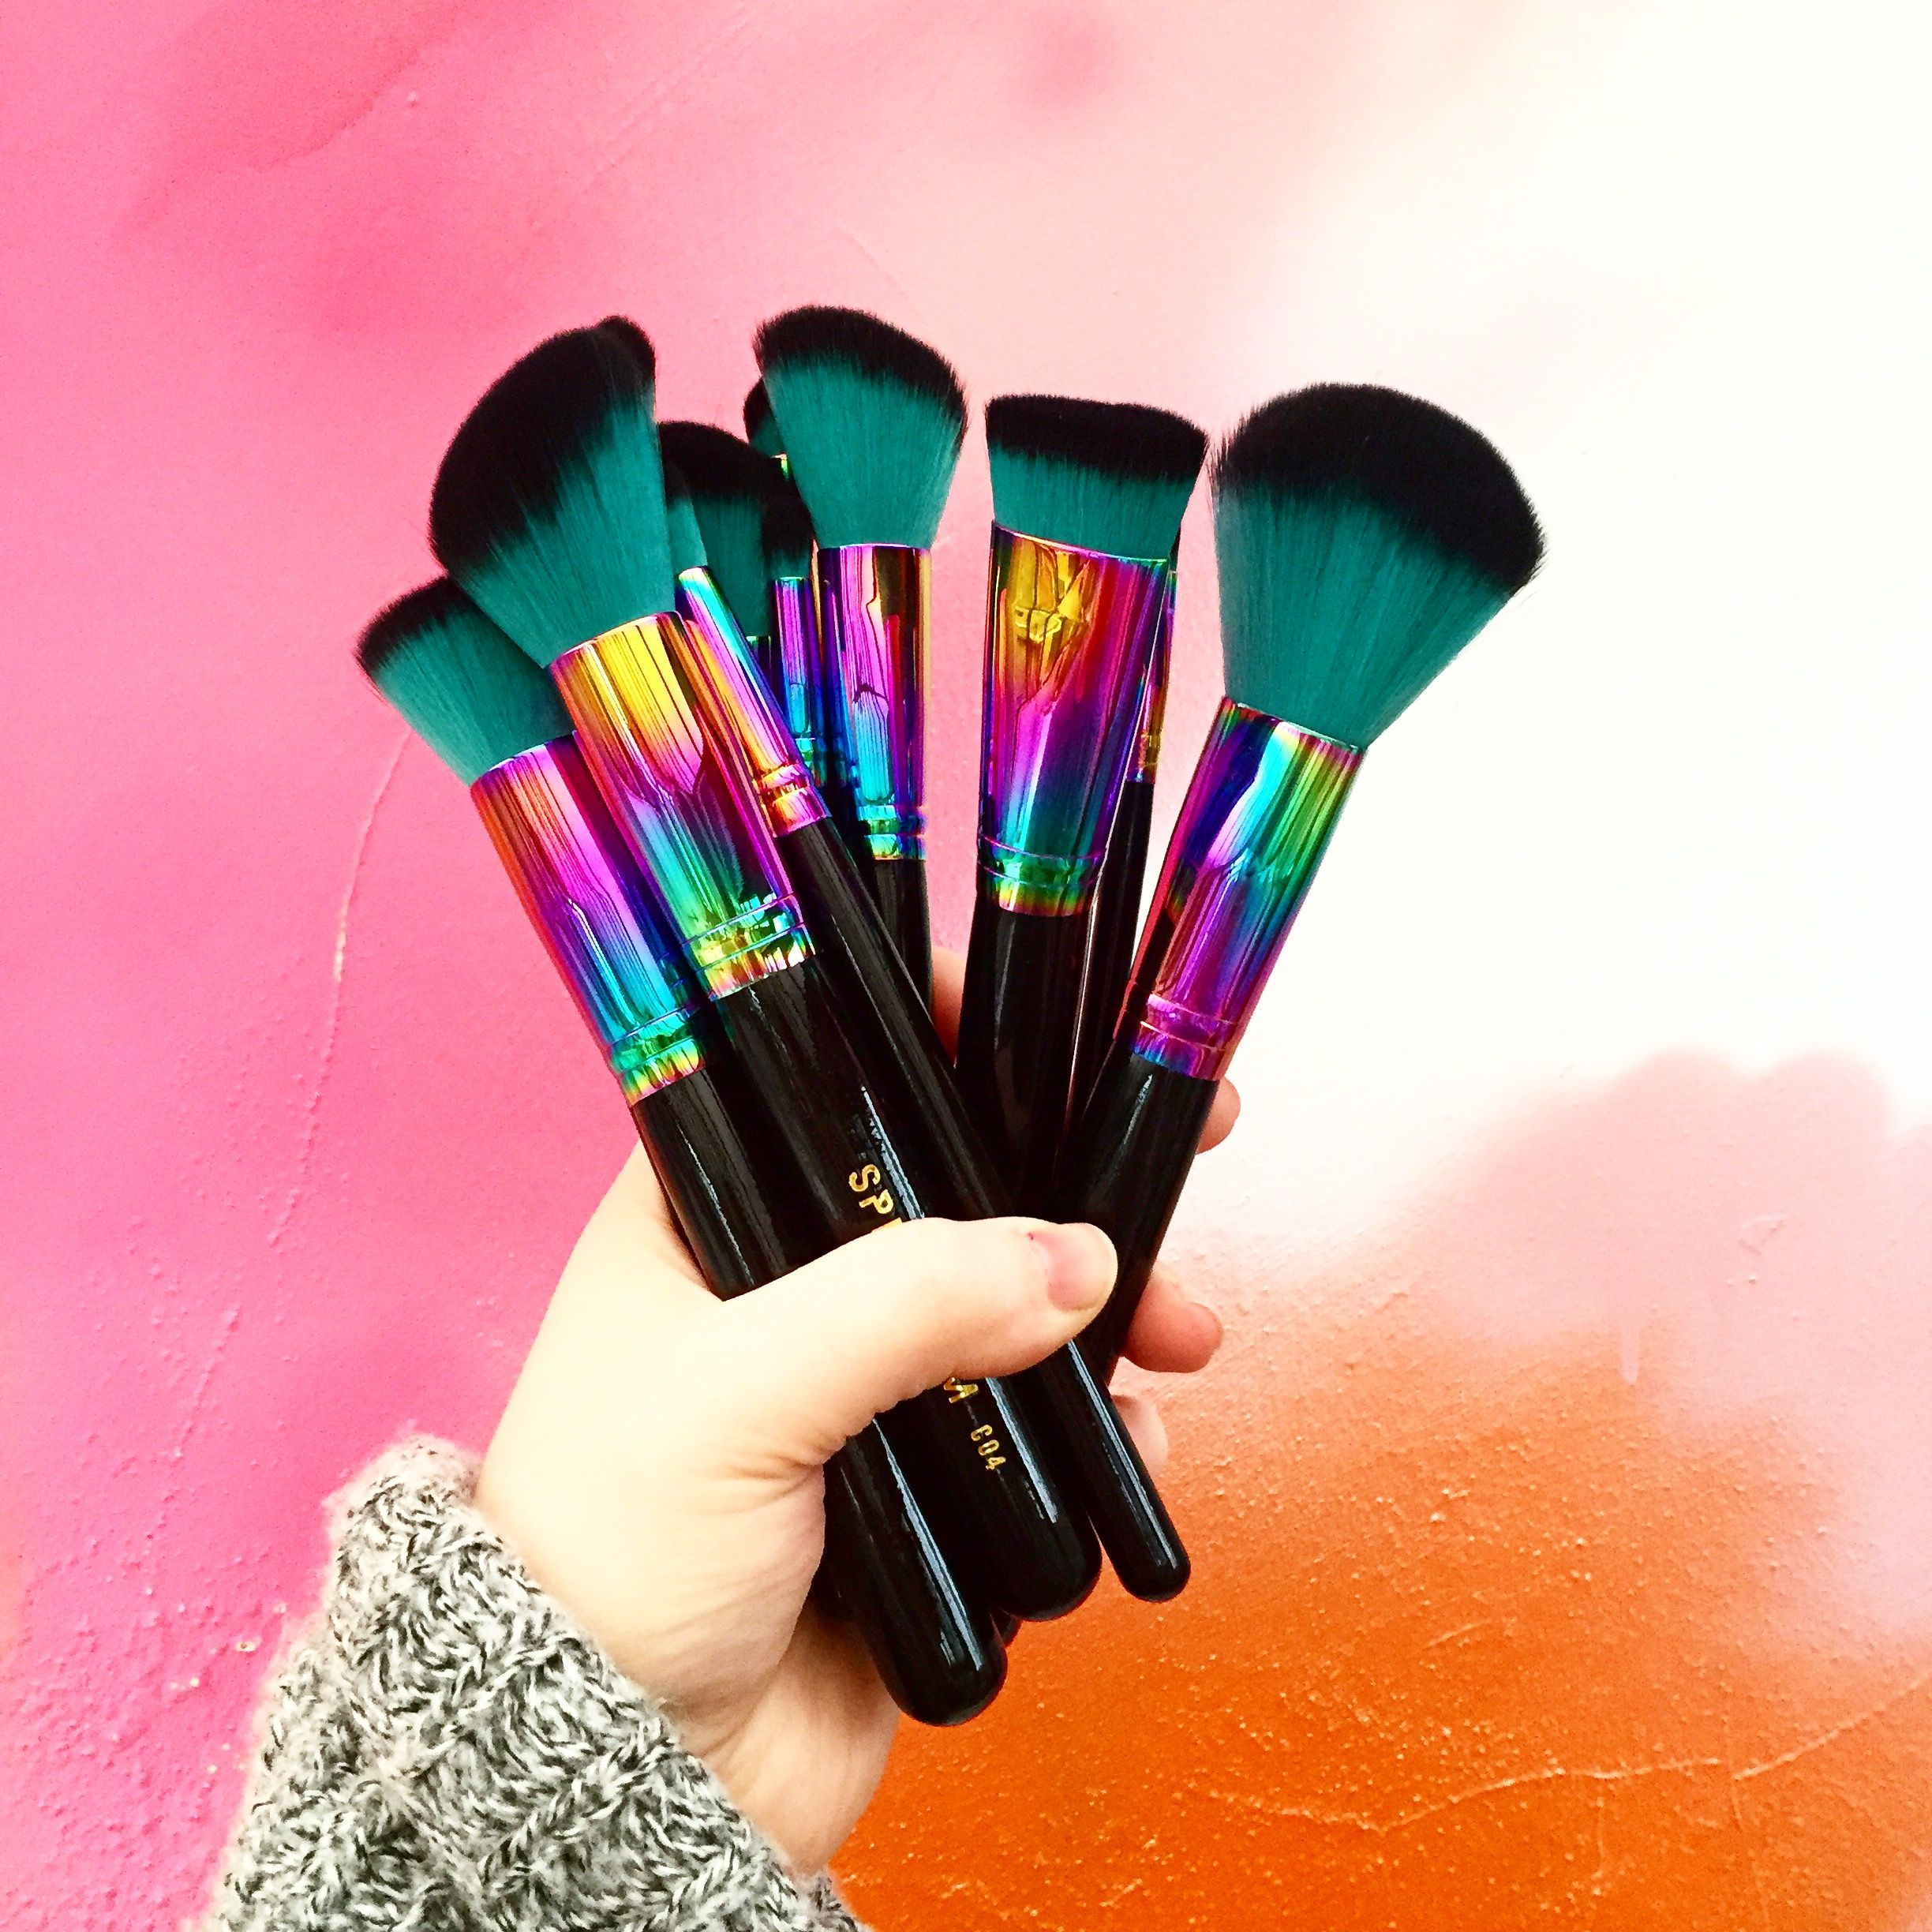 Spectrum make up brushes Makeup brushes, Make up, How to